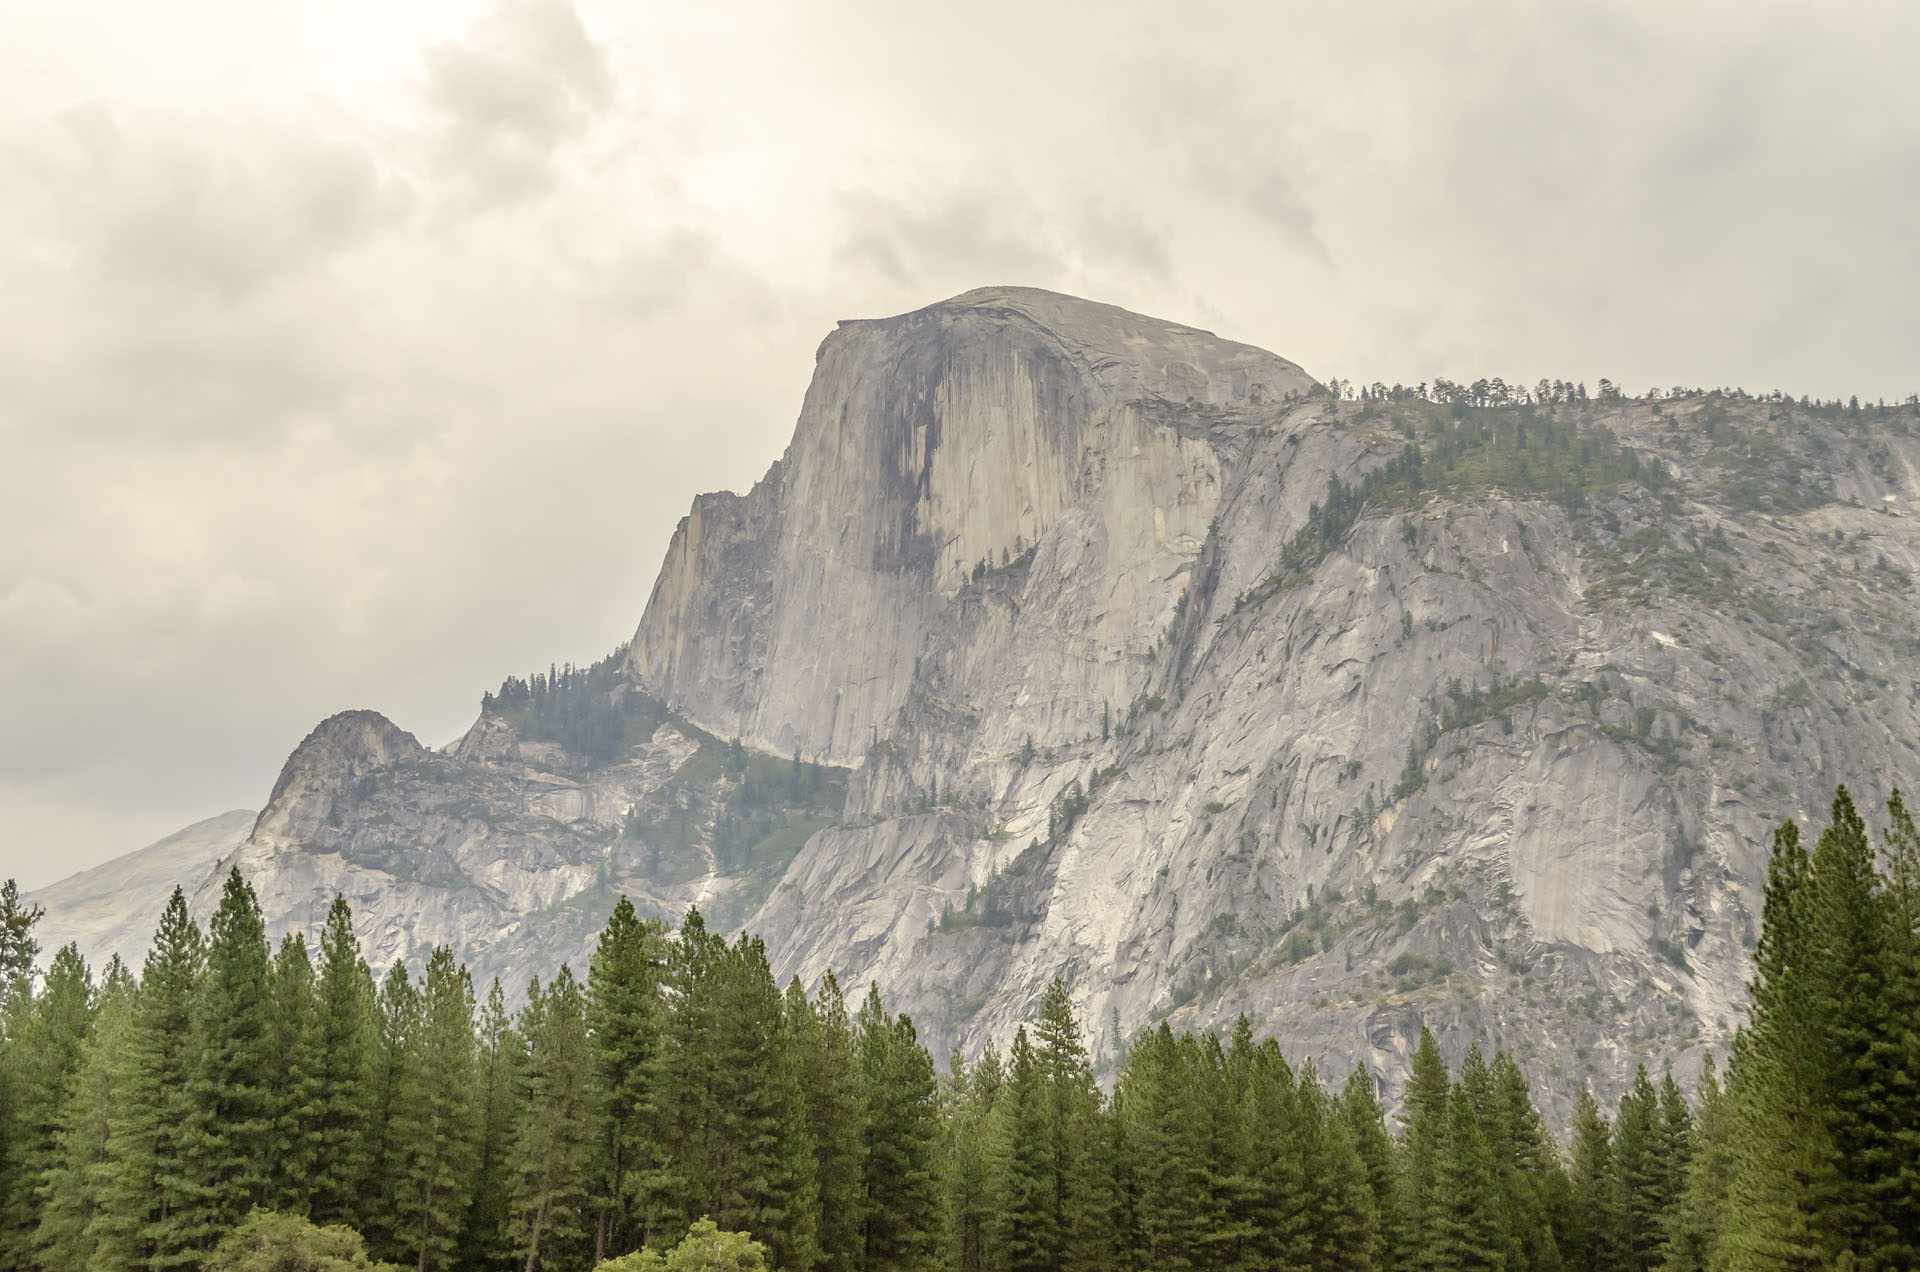 Half Dome in Yosemite National Park, California, USA